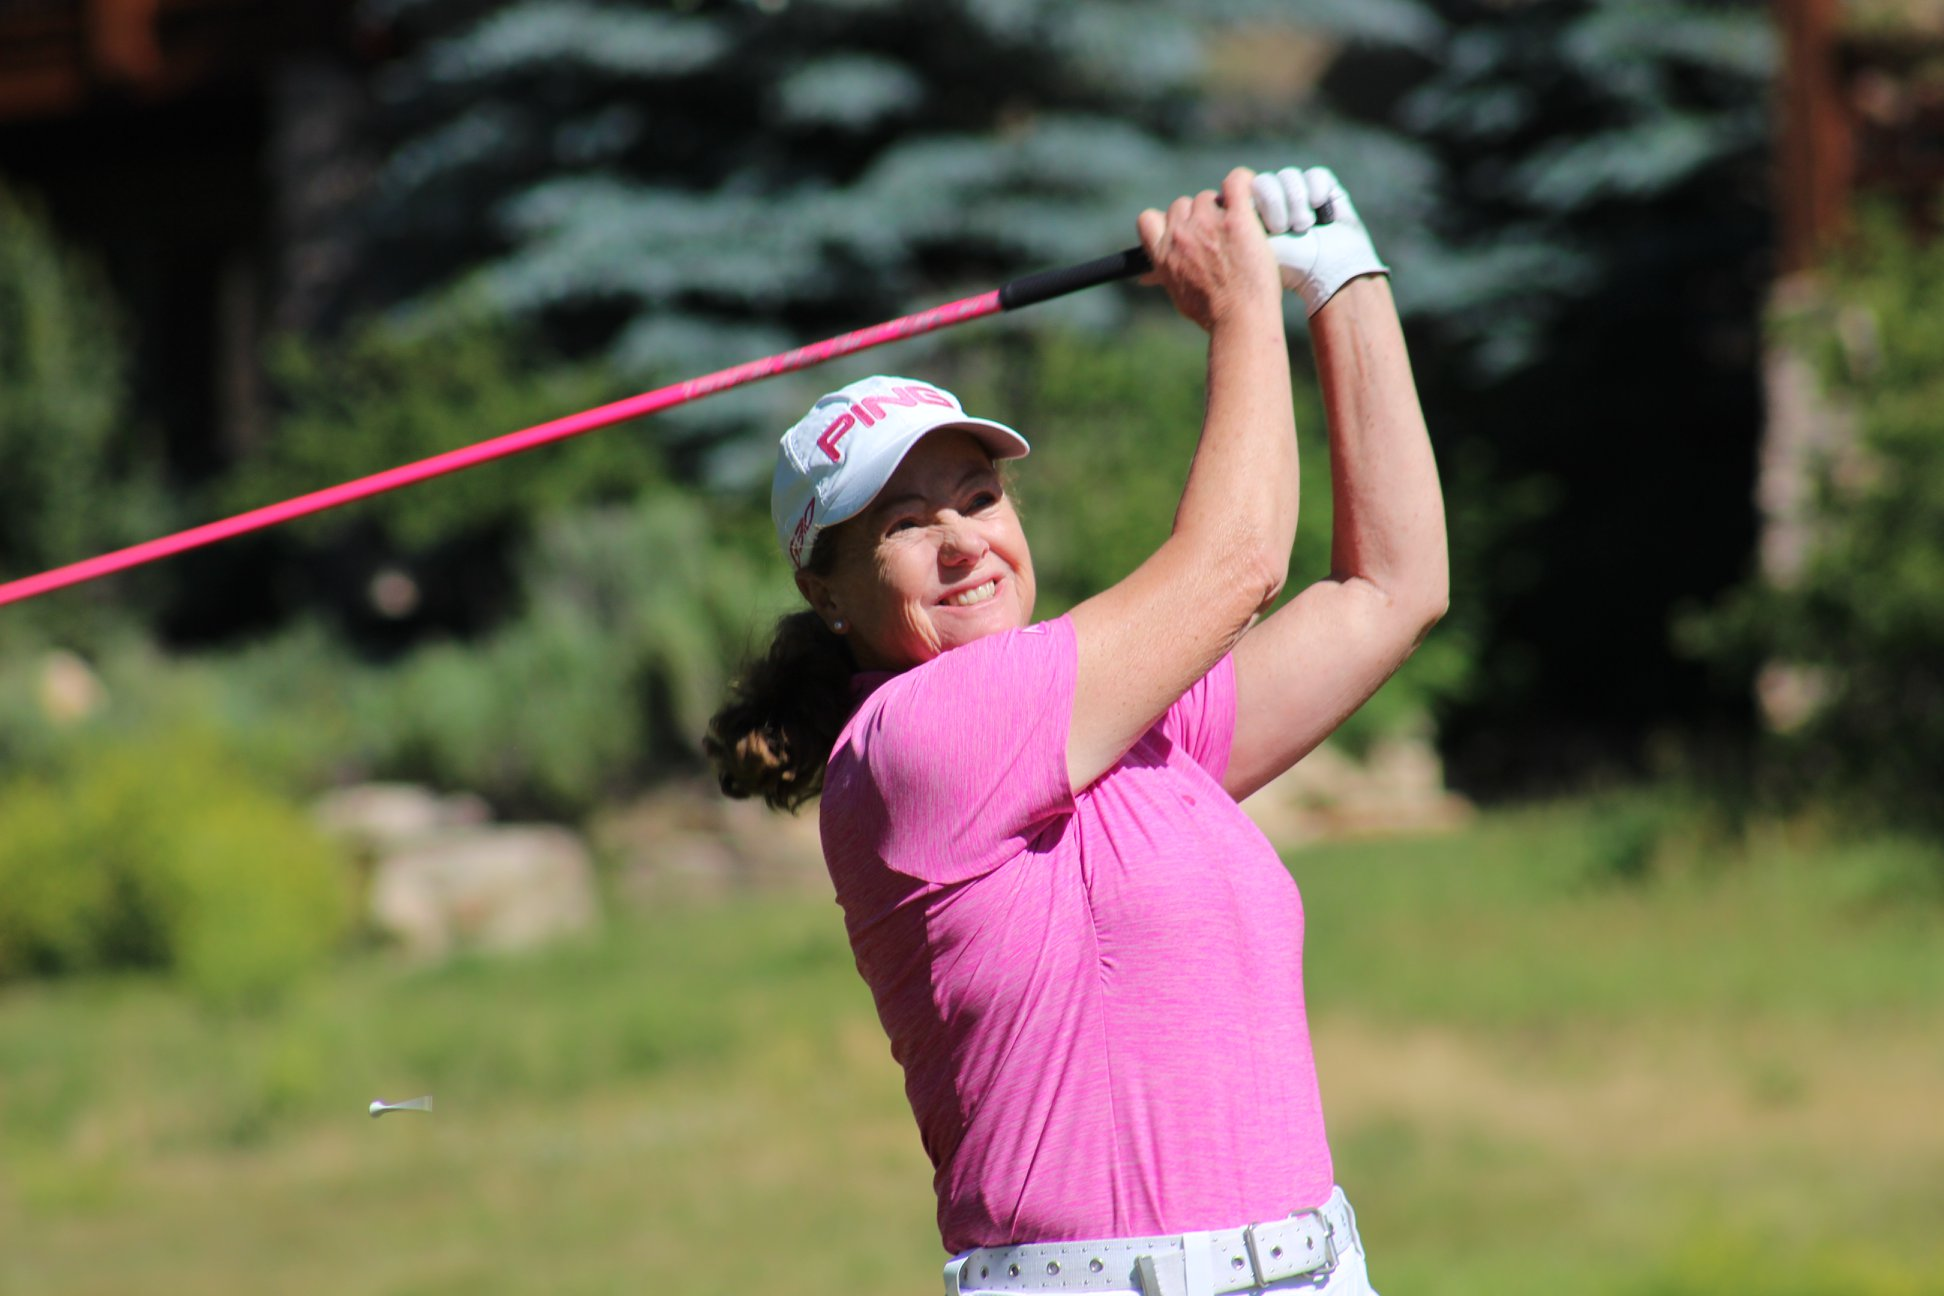 Sue Nyhus makes history by qualifying for U.S. Senior Women's Open